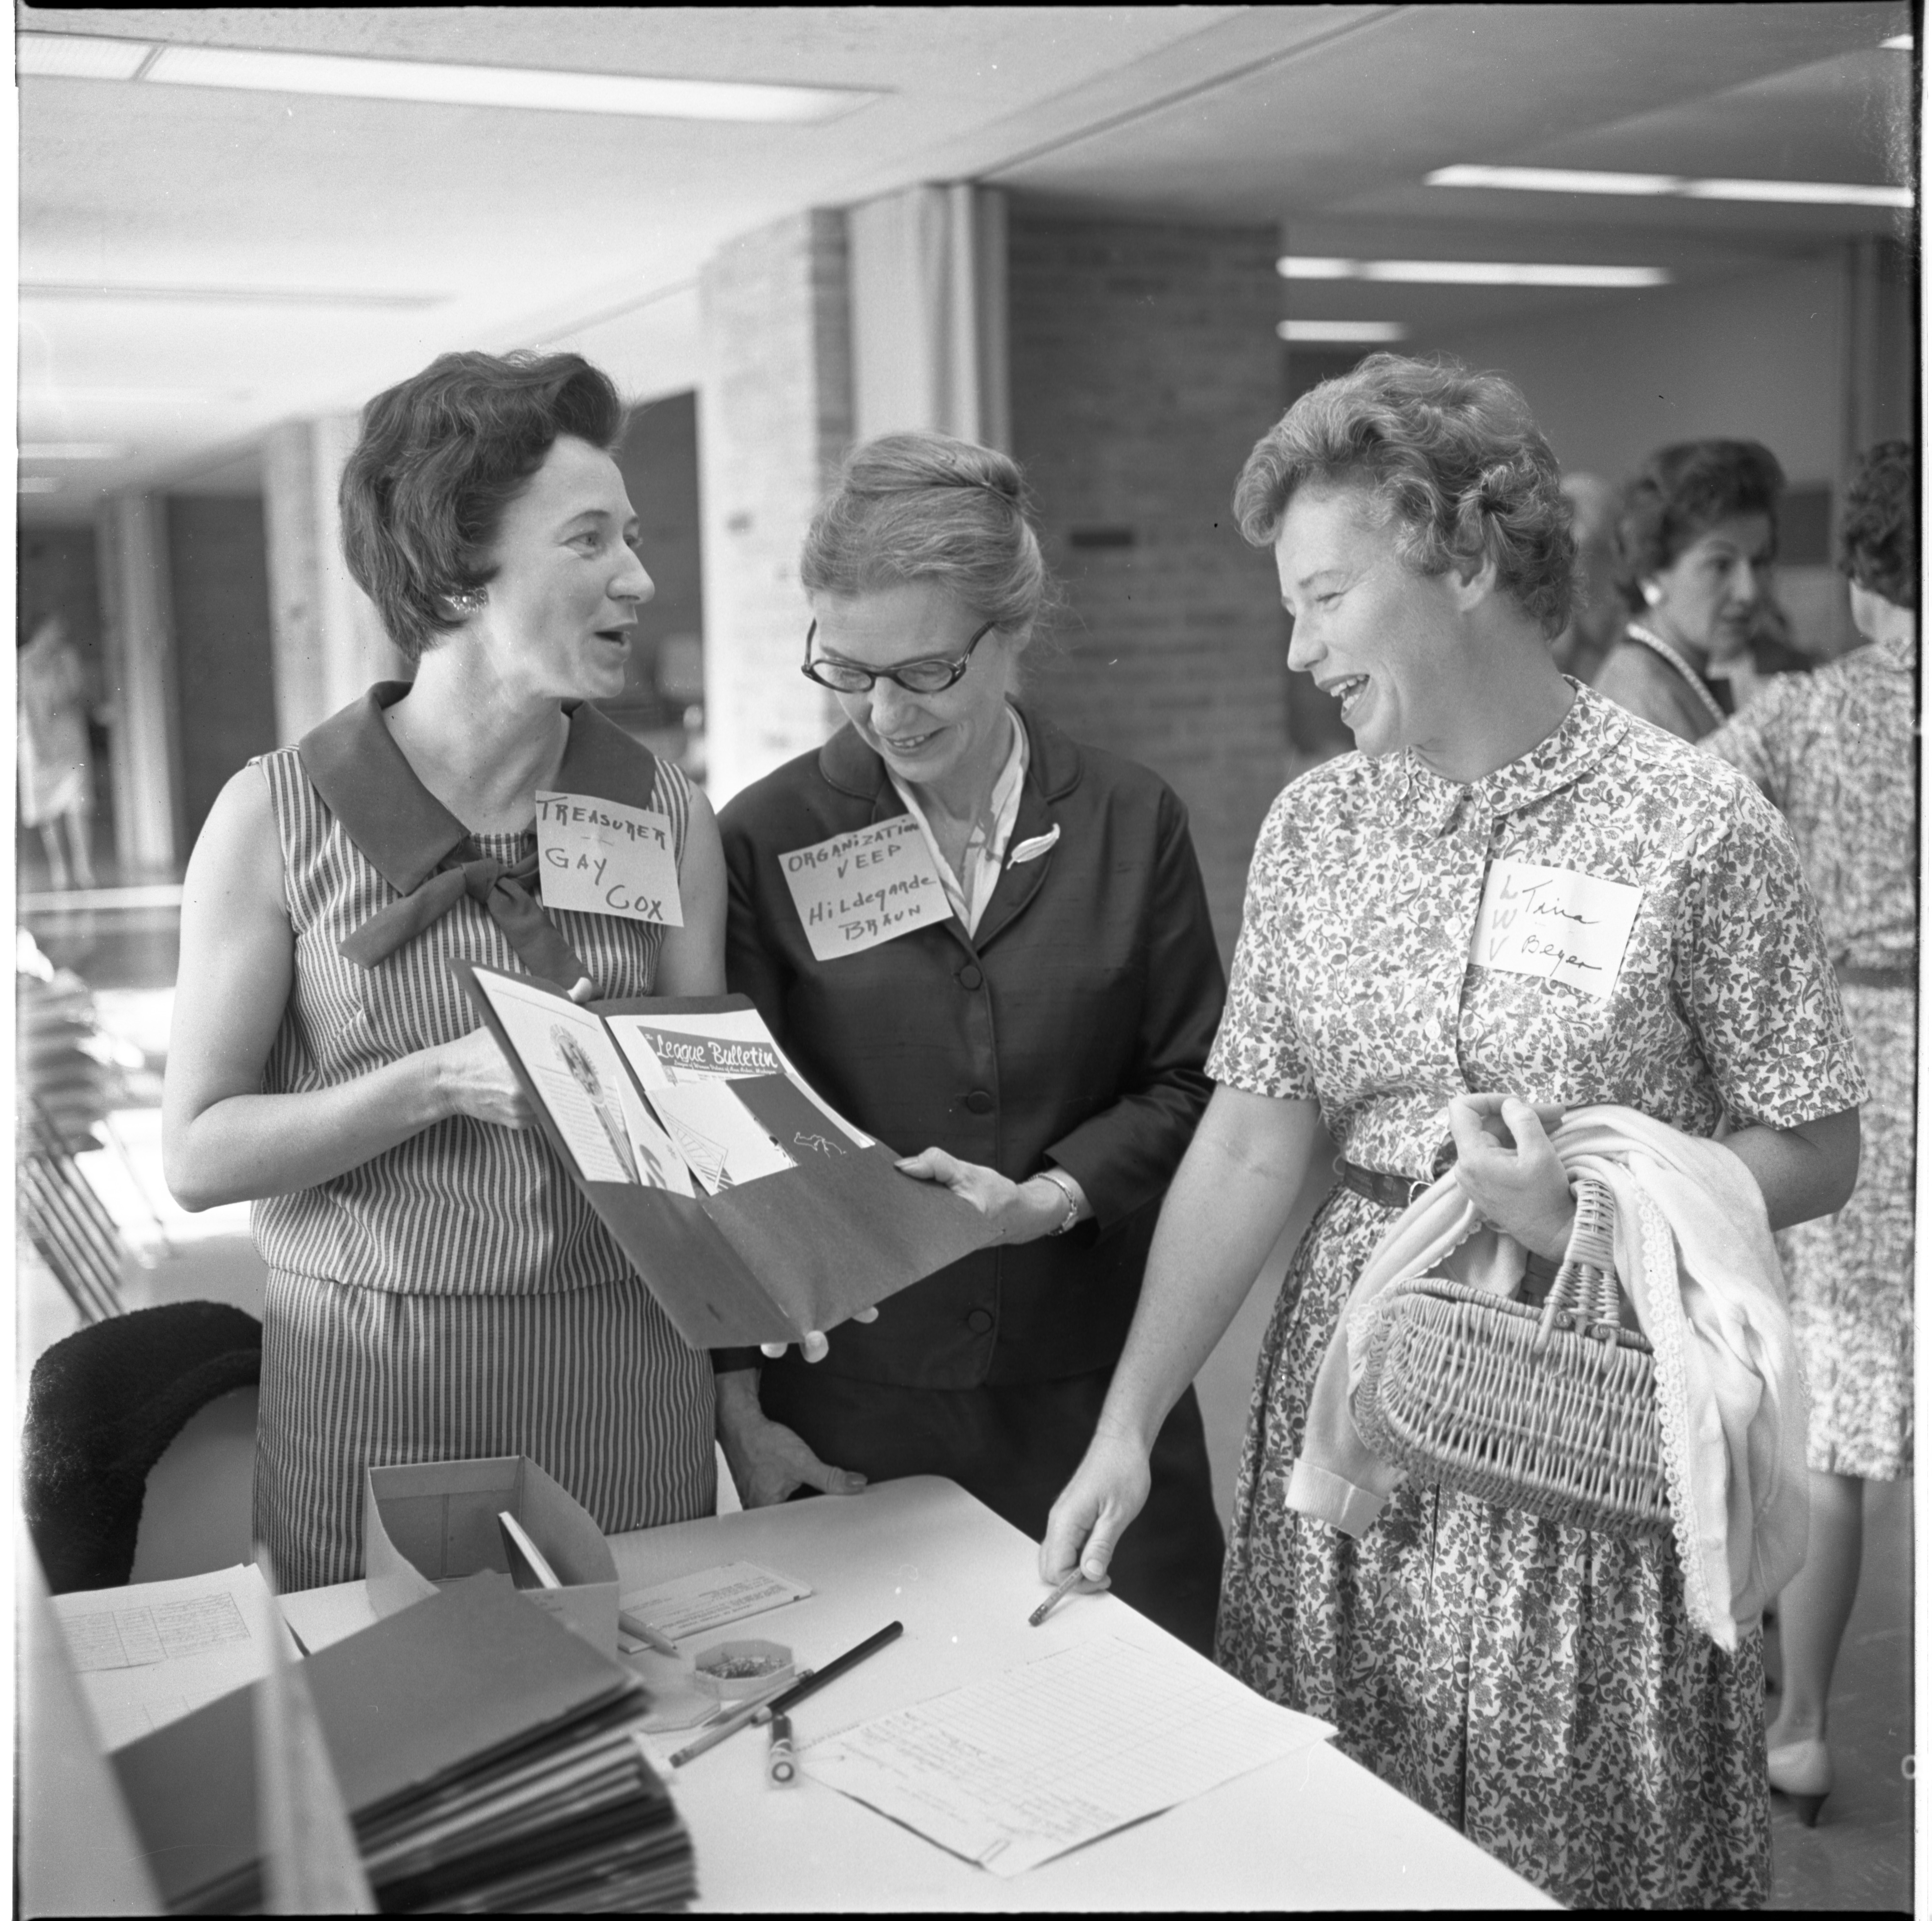 Tina Beyer Is Greeted At The League Of Women Voters Membership Coffee, September 1965 image